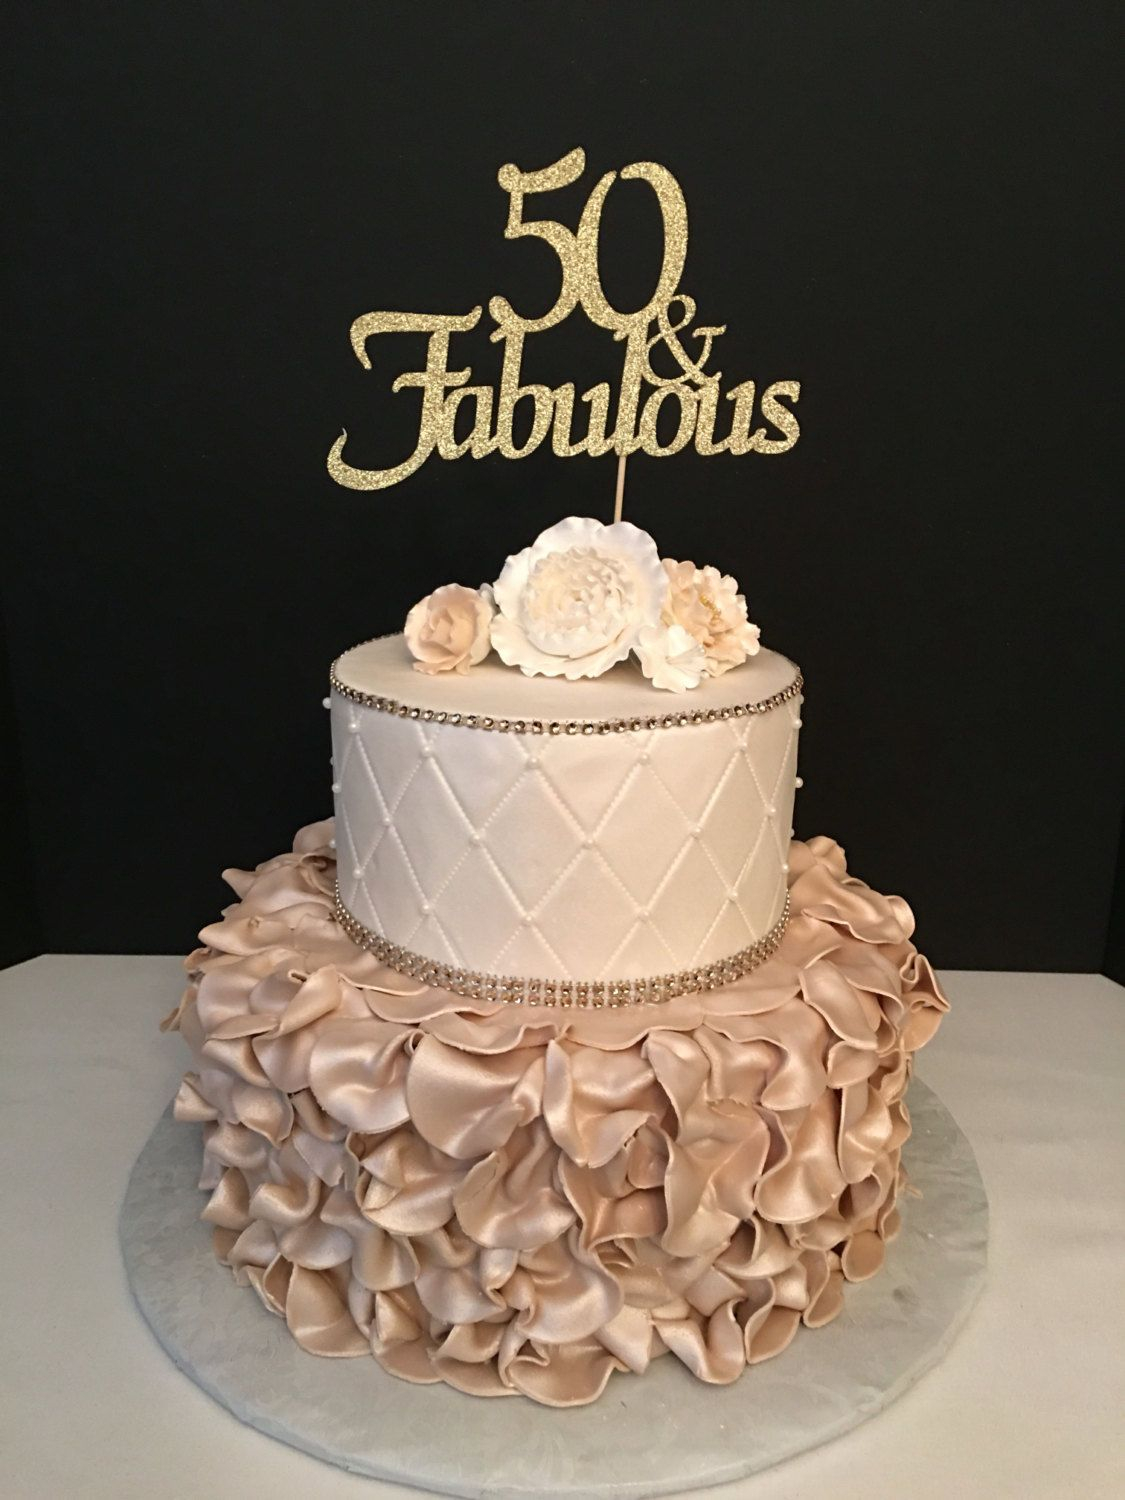 Peachy 50 Birthday Cakes Any Number Gold Glitter 50Th Birthday Cake Personalised Birthday Cards Paralily Jamesorg